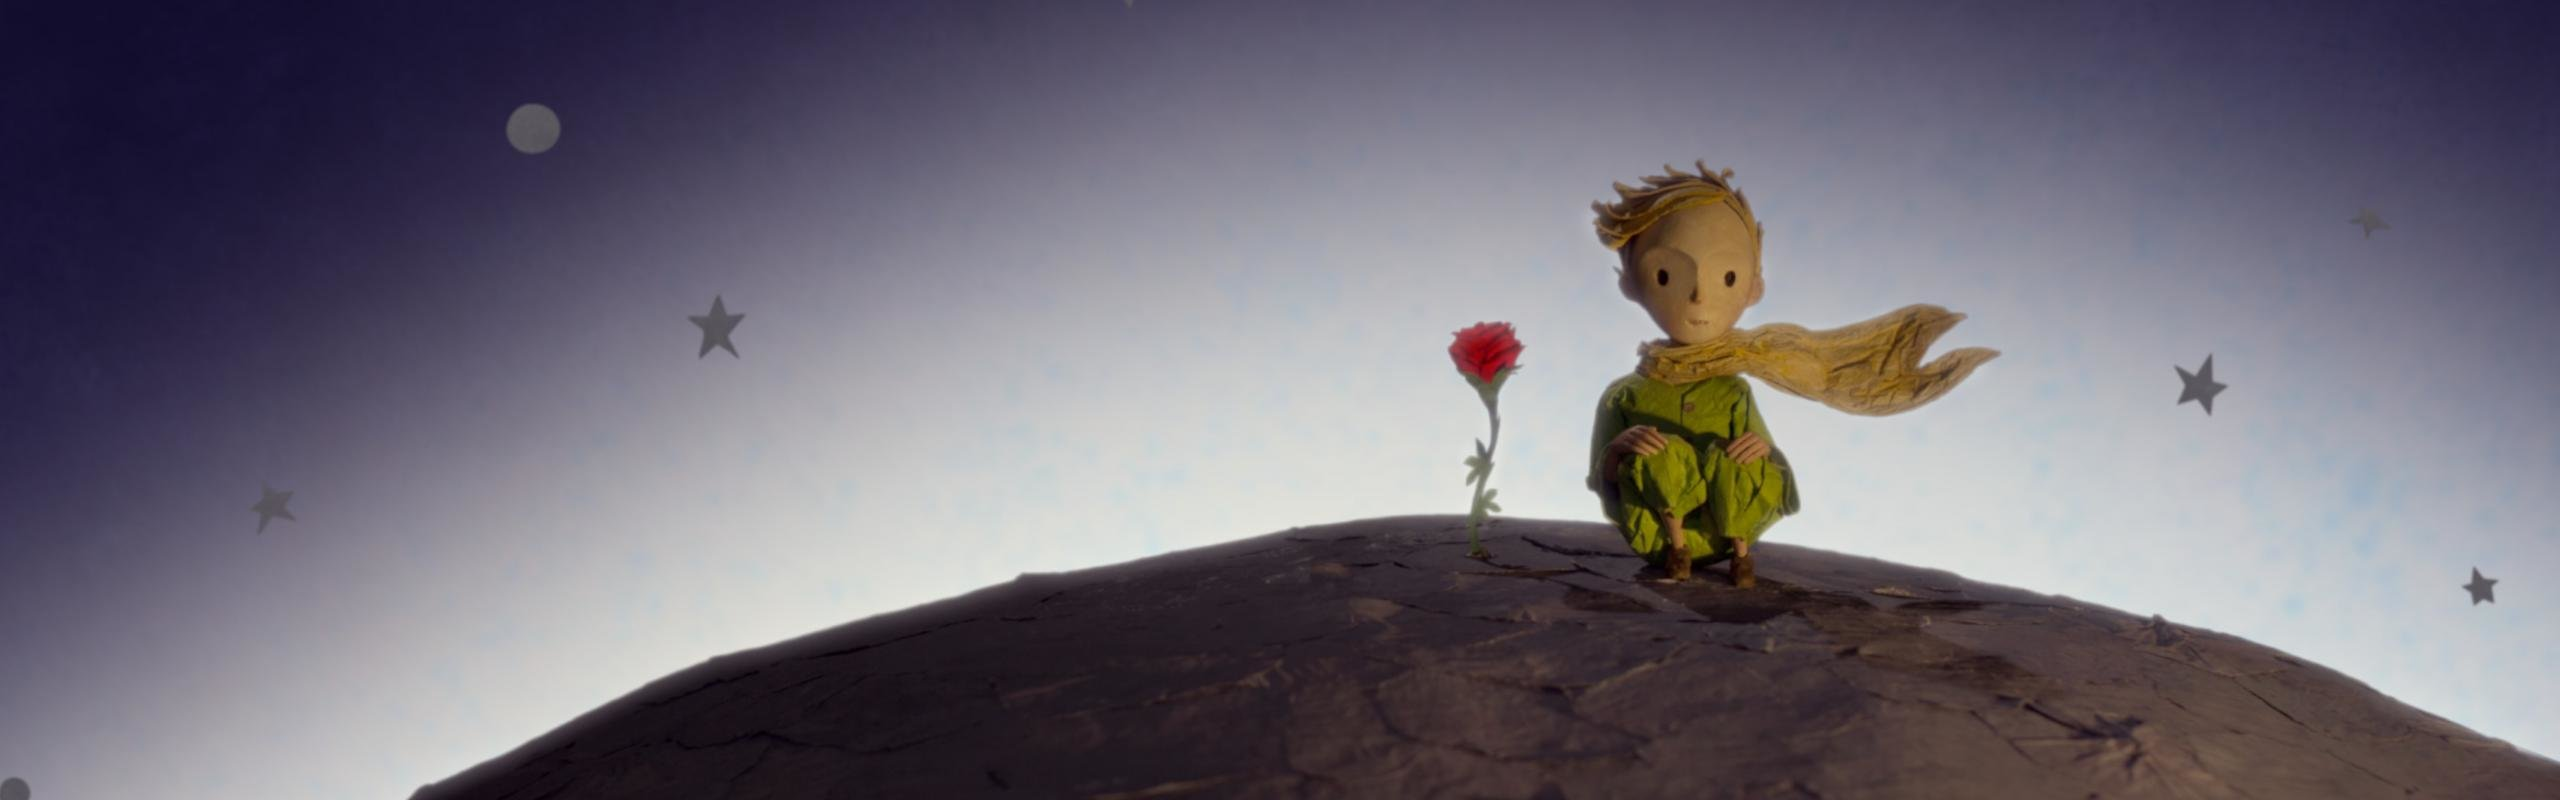 Awesome The Little Prince free wallpaper ID:9393 for dual monitor 2560x800 computer